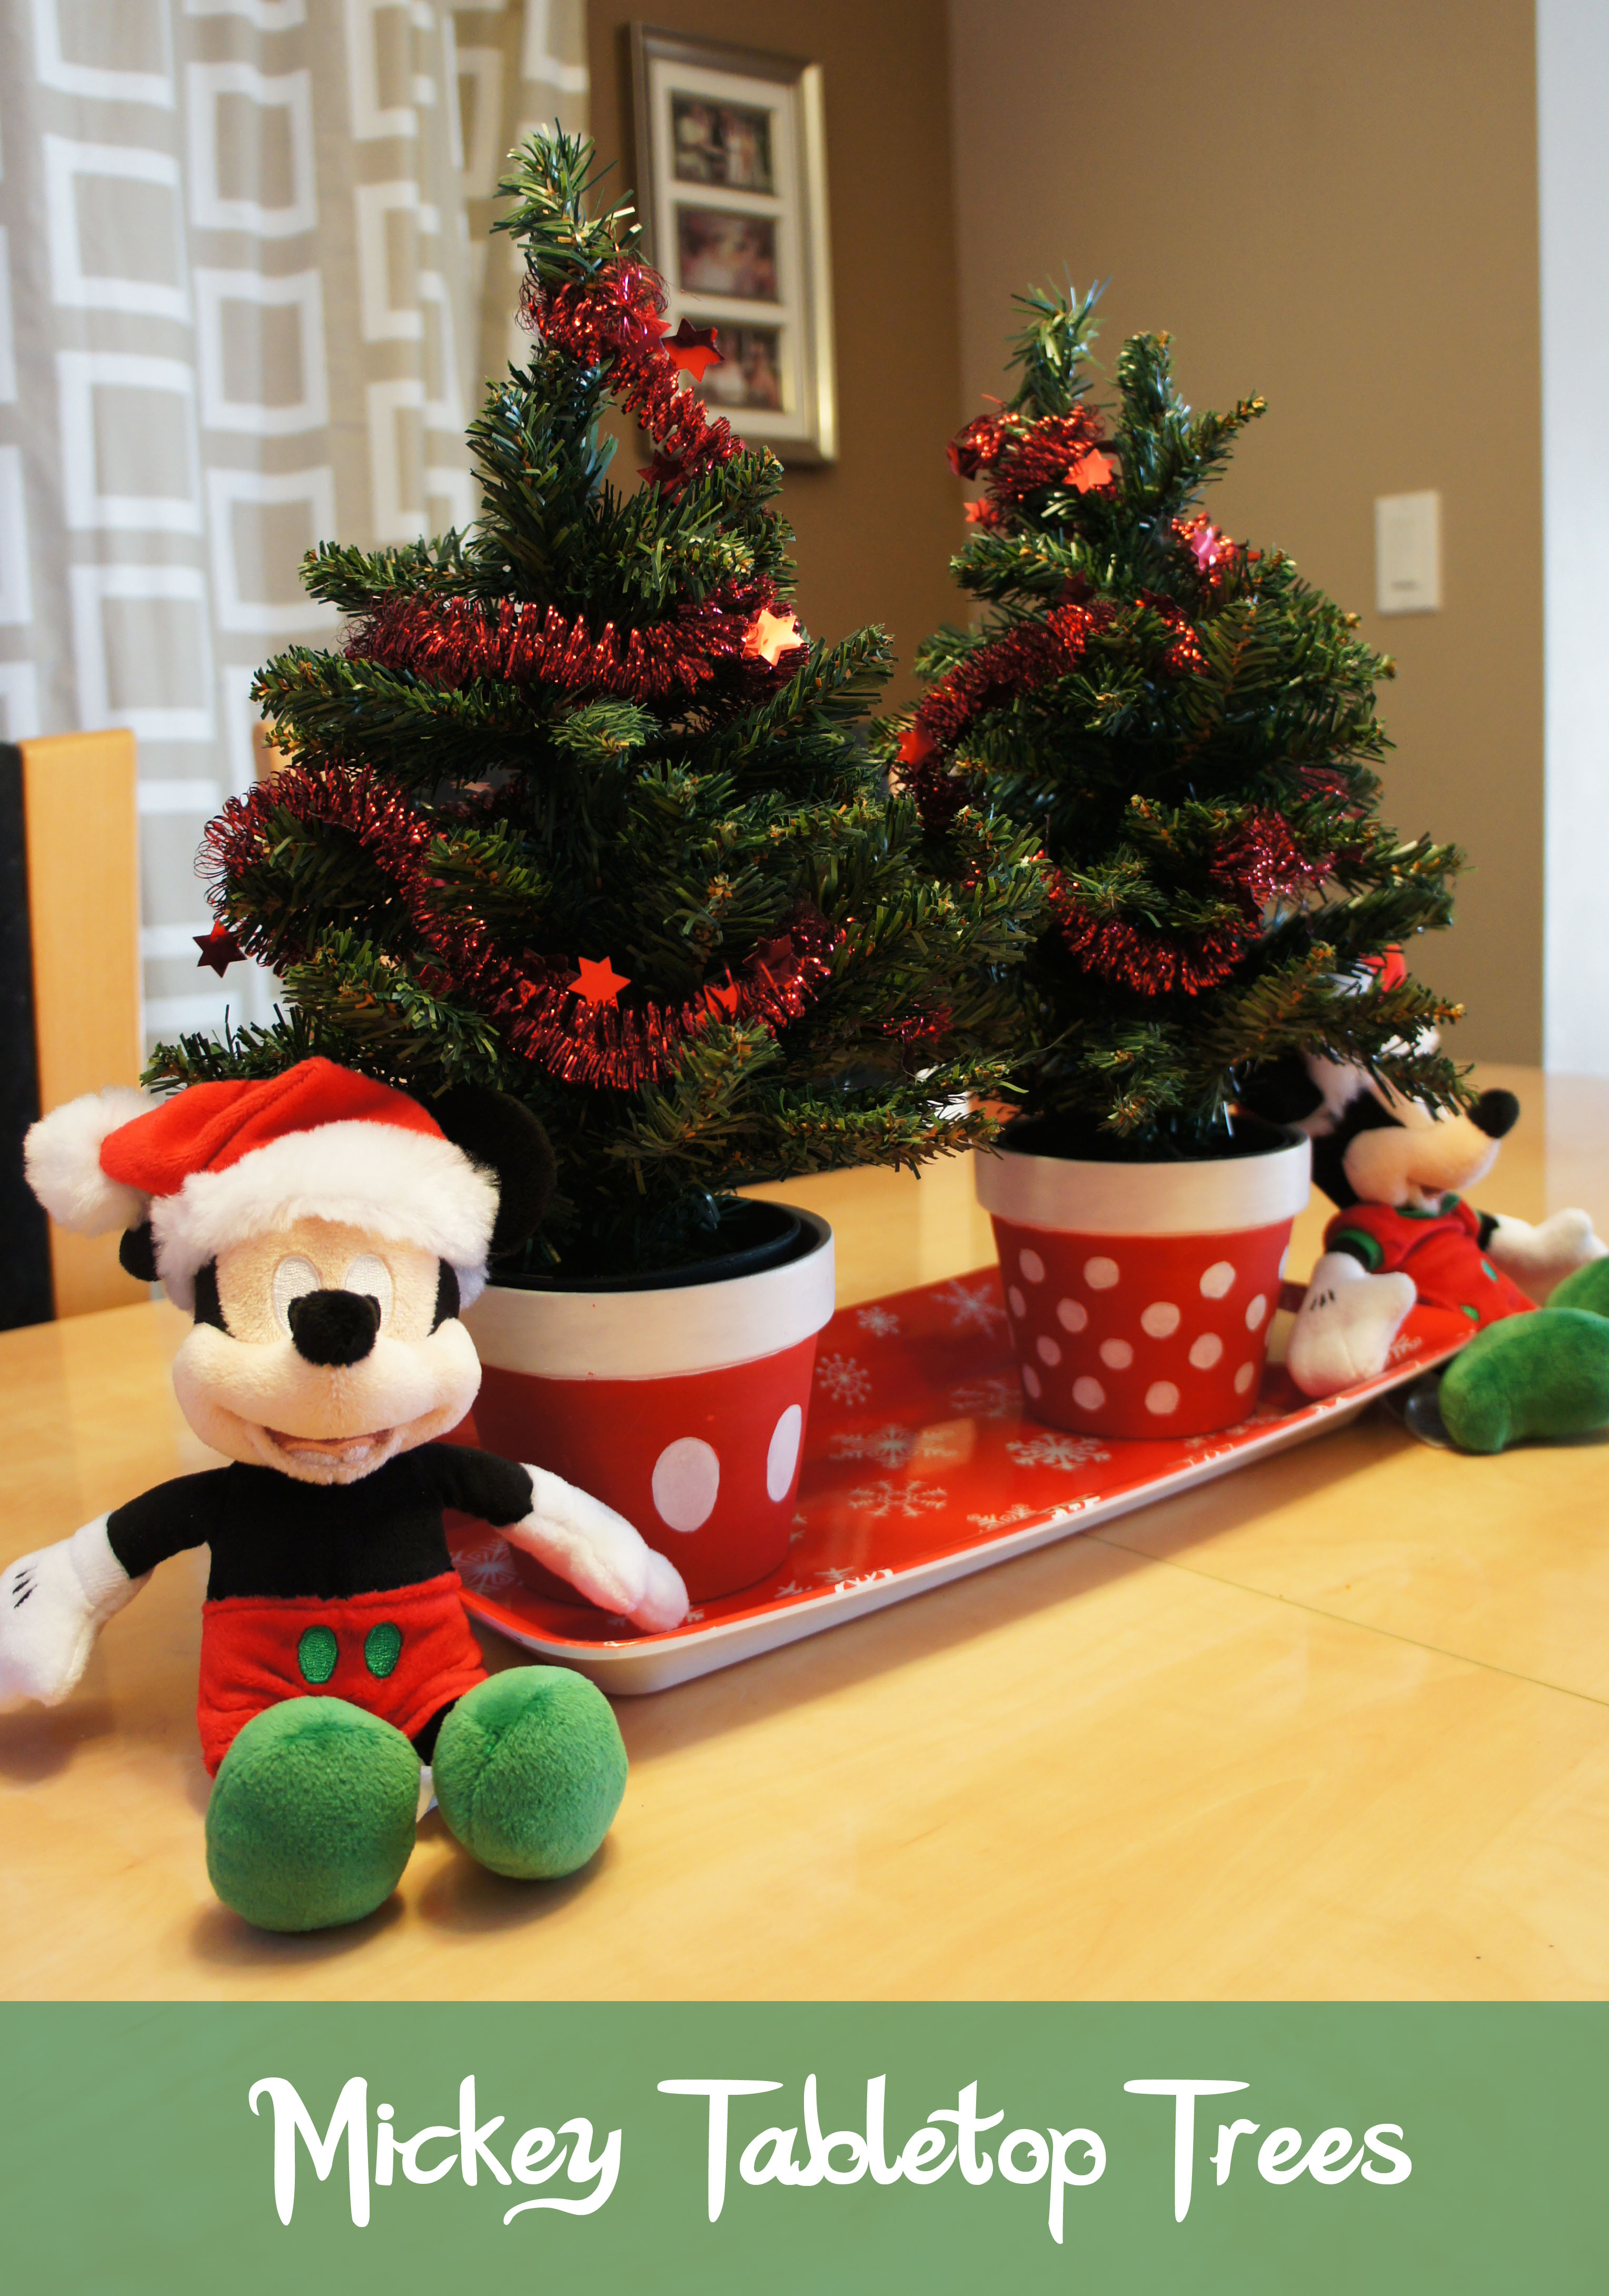 Tabletop Decorations Merry Mickey Snowman and Tabletop Trees